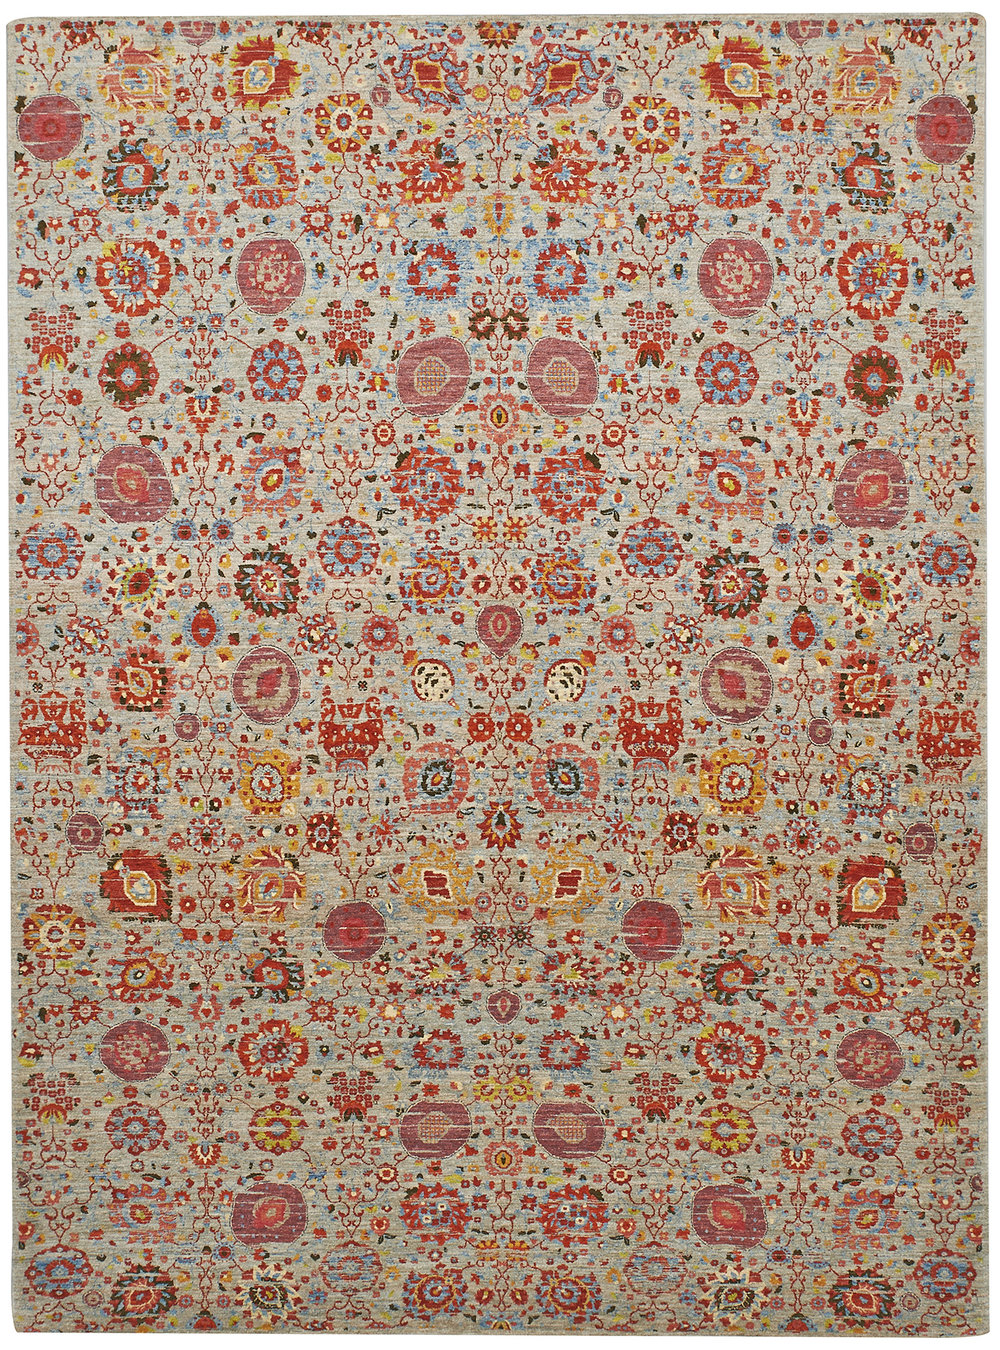 Nouveau Tabriz - Carpet Design Award Winner 2015